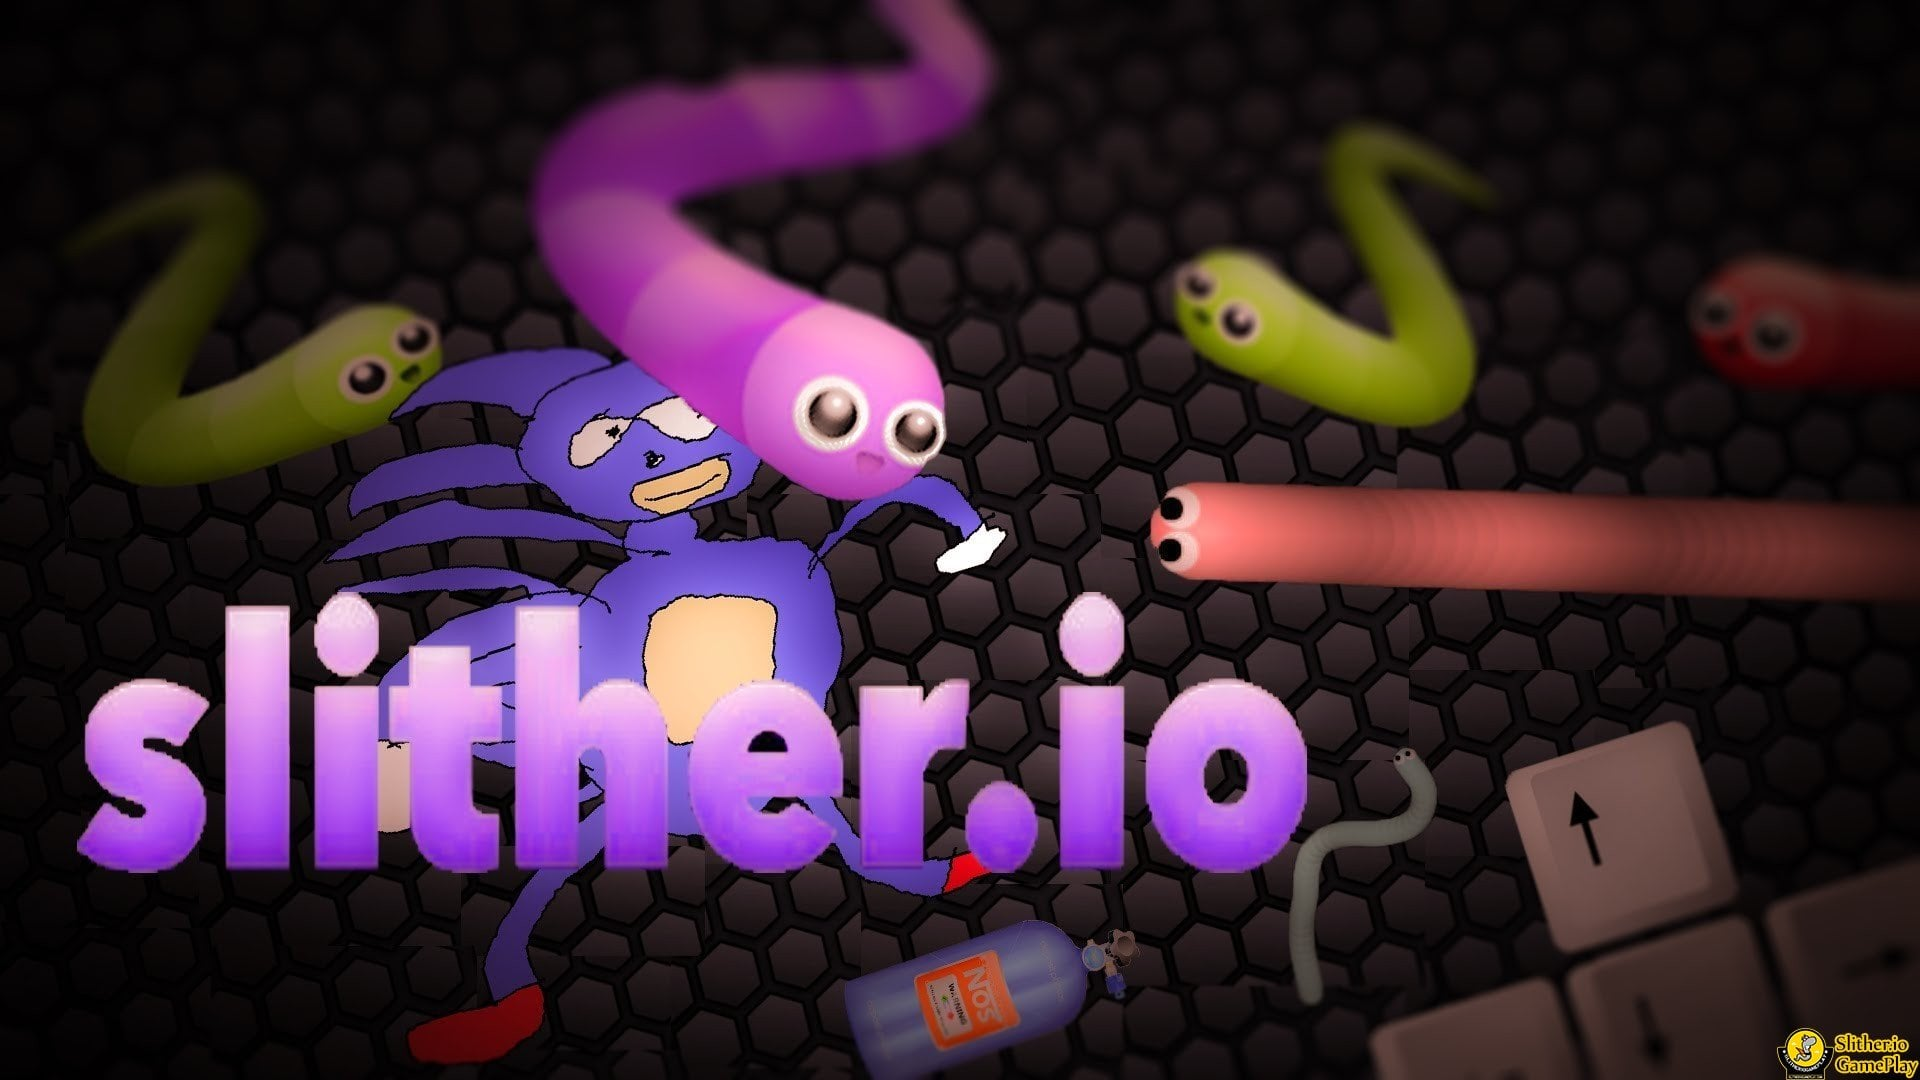 slither.io custom skins simple guide